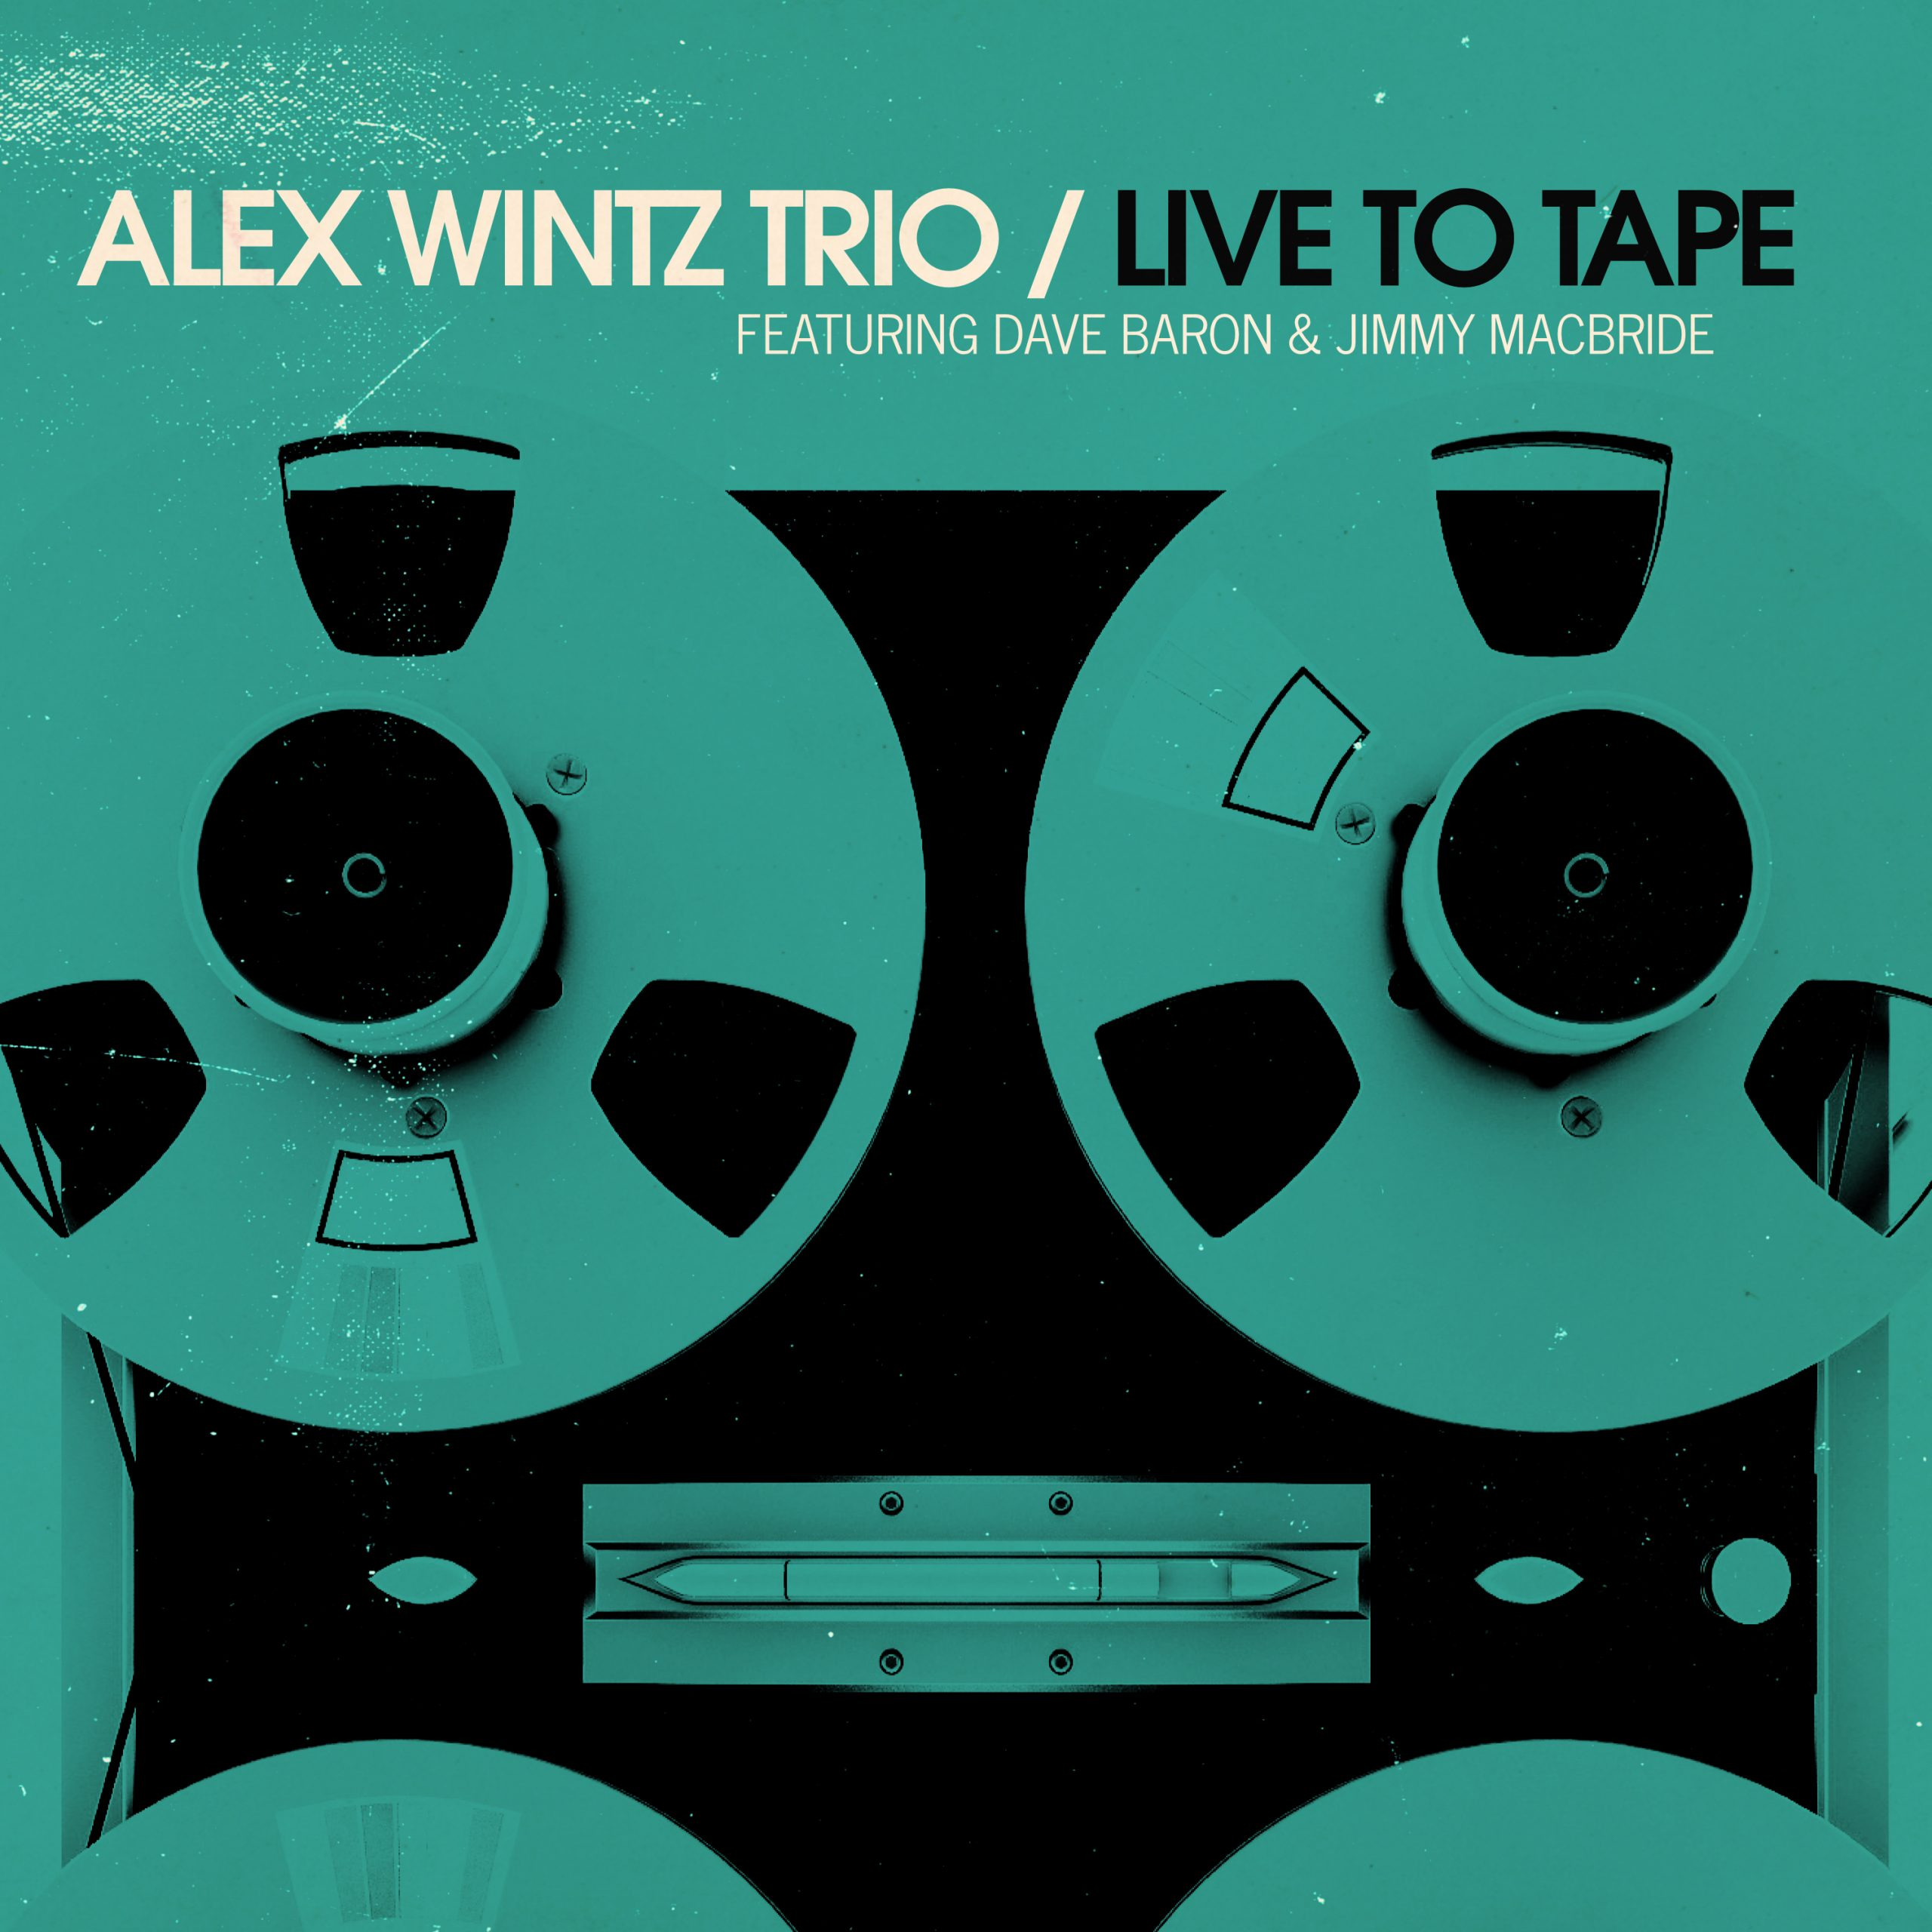 NEW RELEASE: Alex Wintz's LIVE TO TAPE out November 6th on Outside in Music